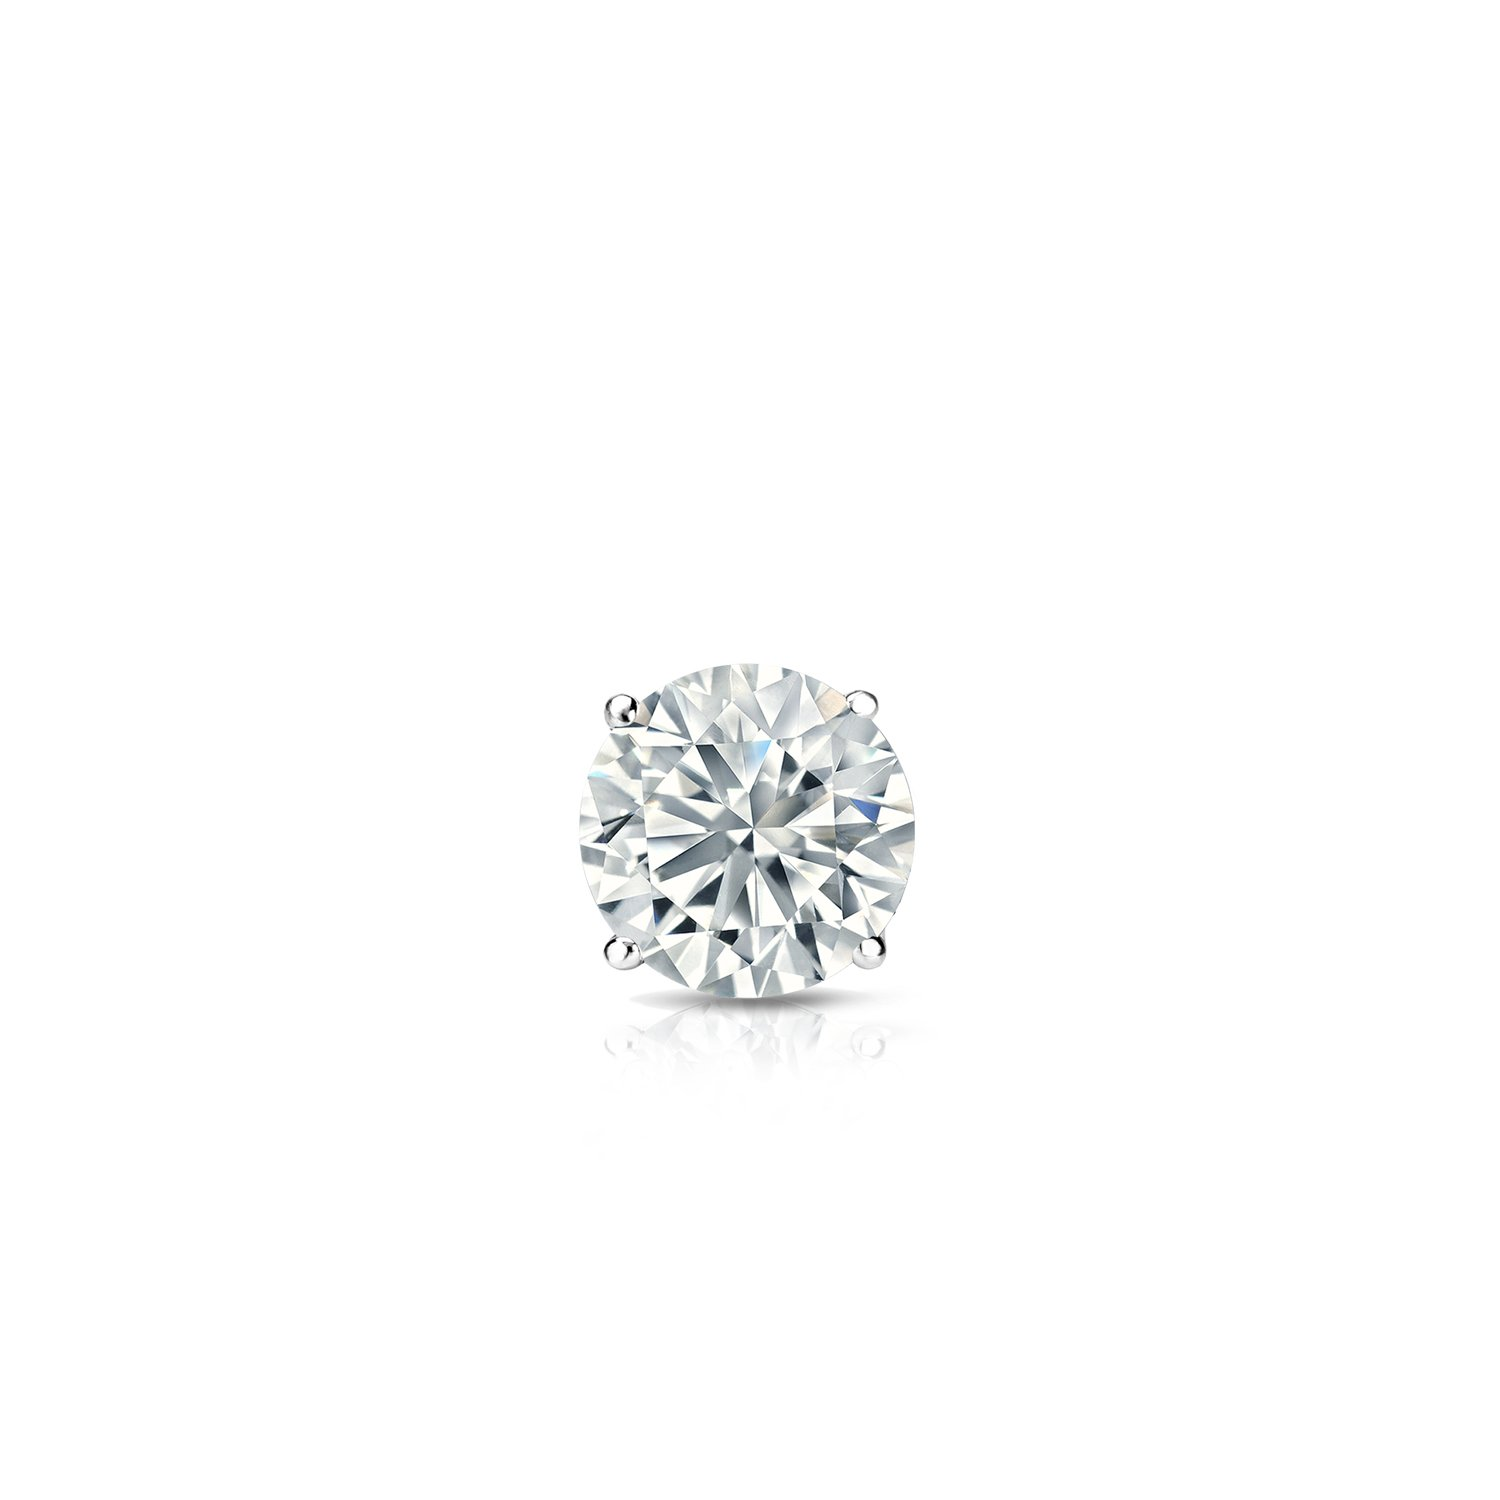 14k White Gold Round Diamond Simulant CZ SINGLE STUD Earrings 3-Prong(1/6cttw,Excellent Quality)